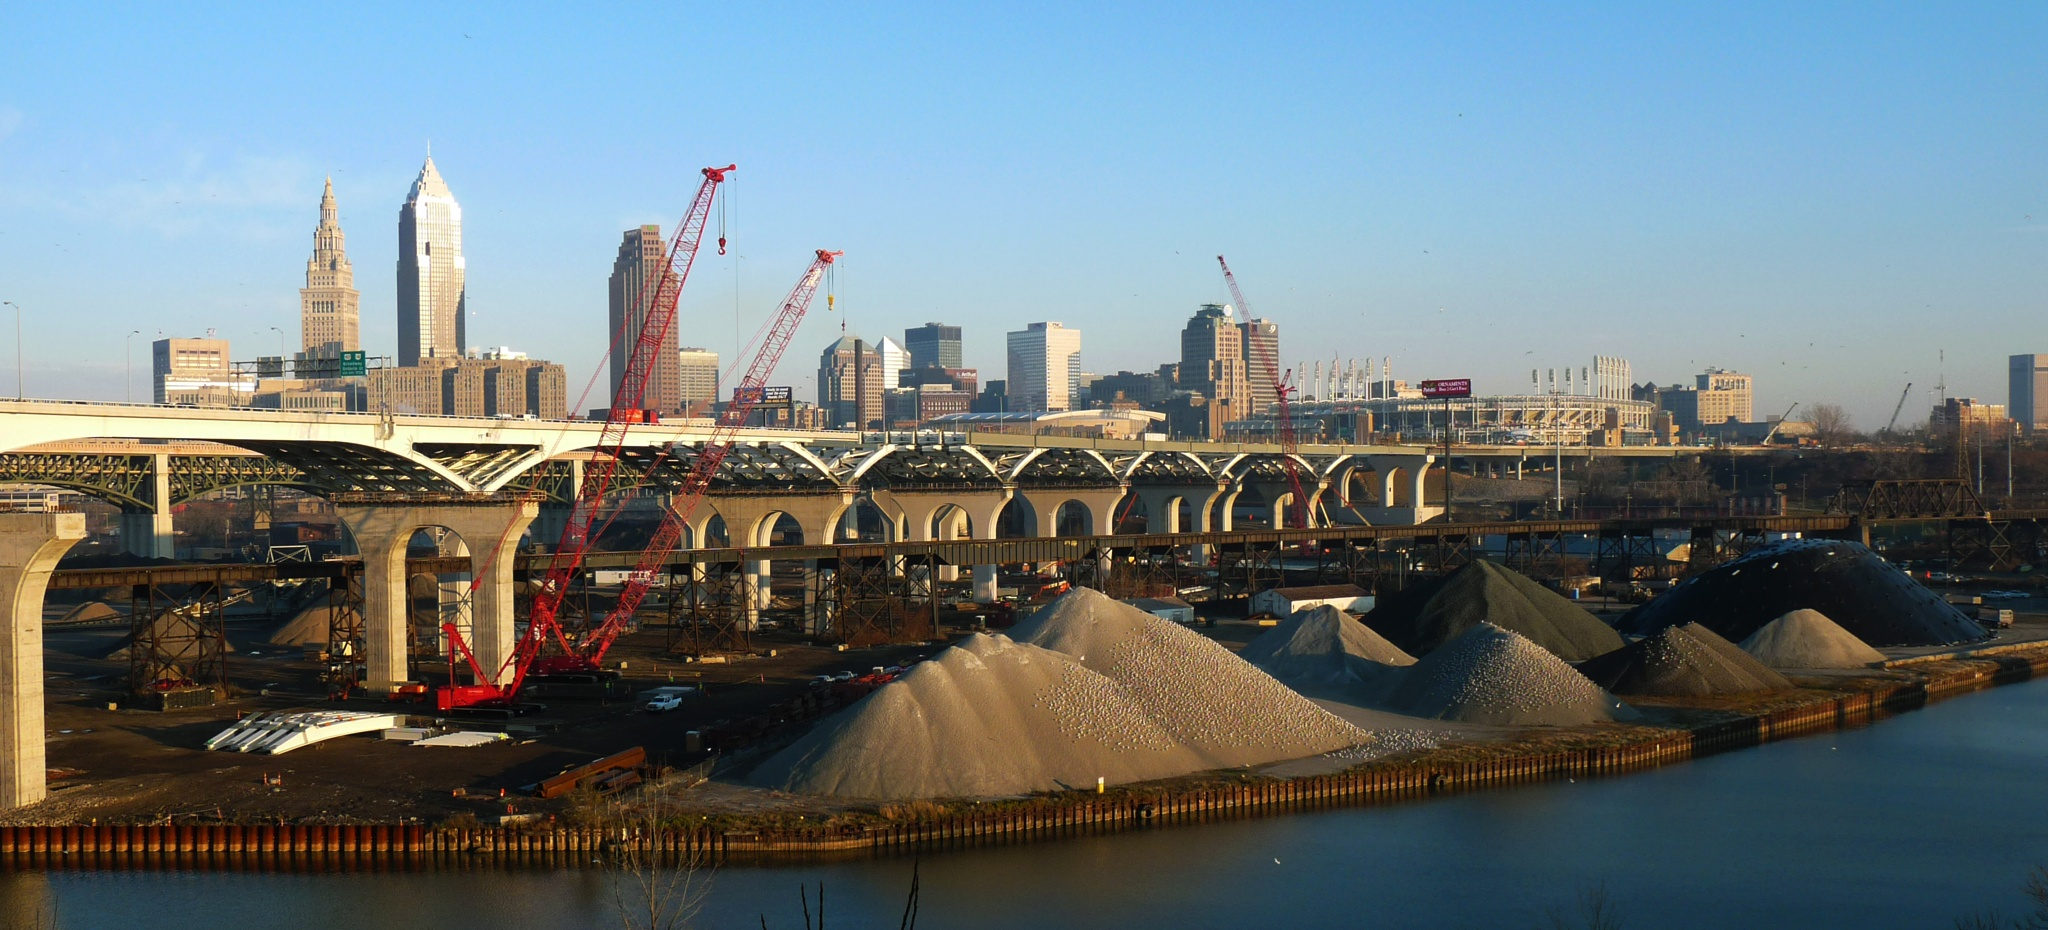 The expansion Freeway in the center of Cleveland. by Valeriy Shurik